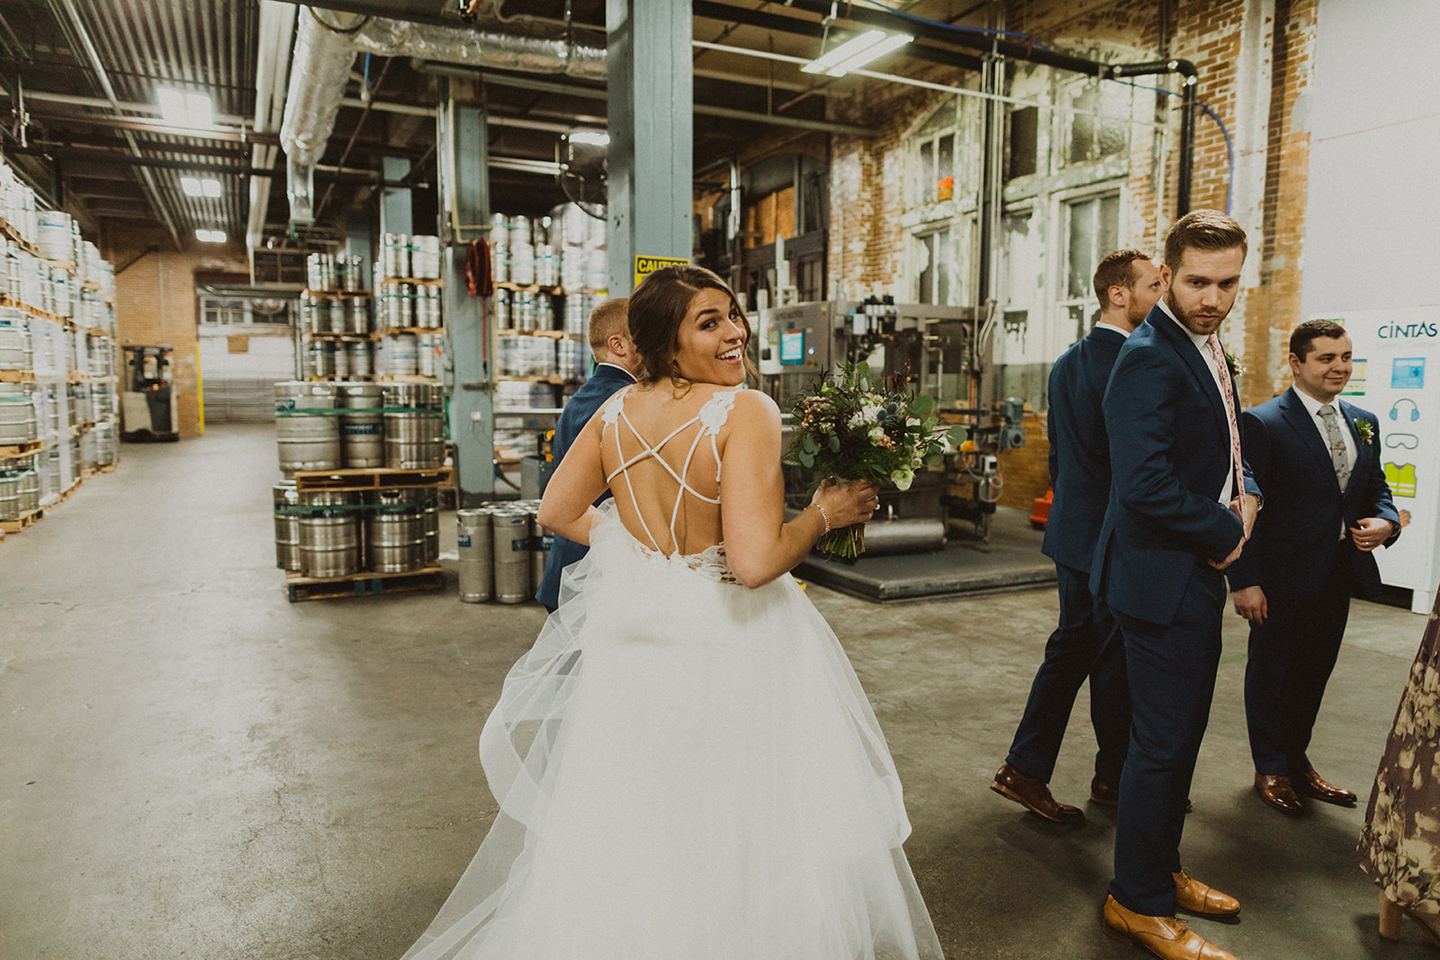 Becca-Tyler-Bride-Brewery-Couture-Closet-Hayley-Paige-Madeline-Thompson.jpg